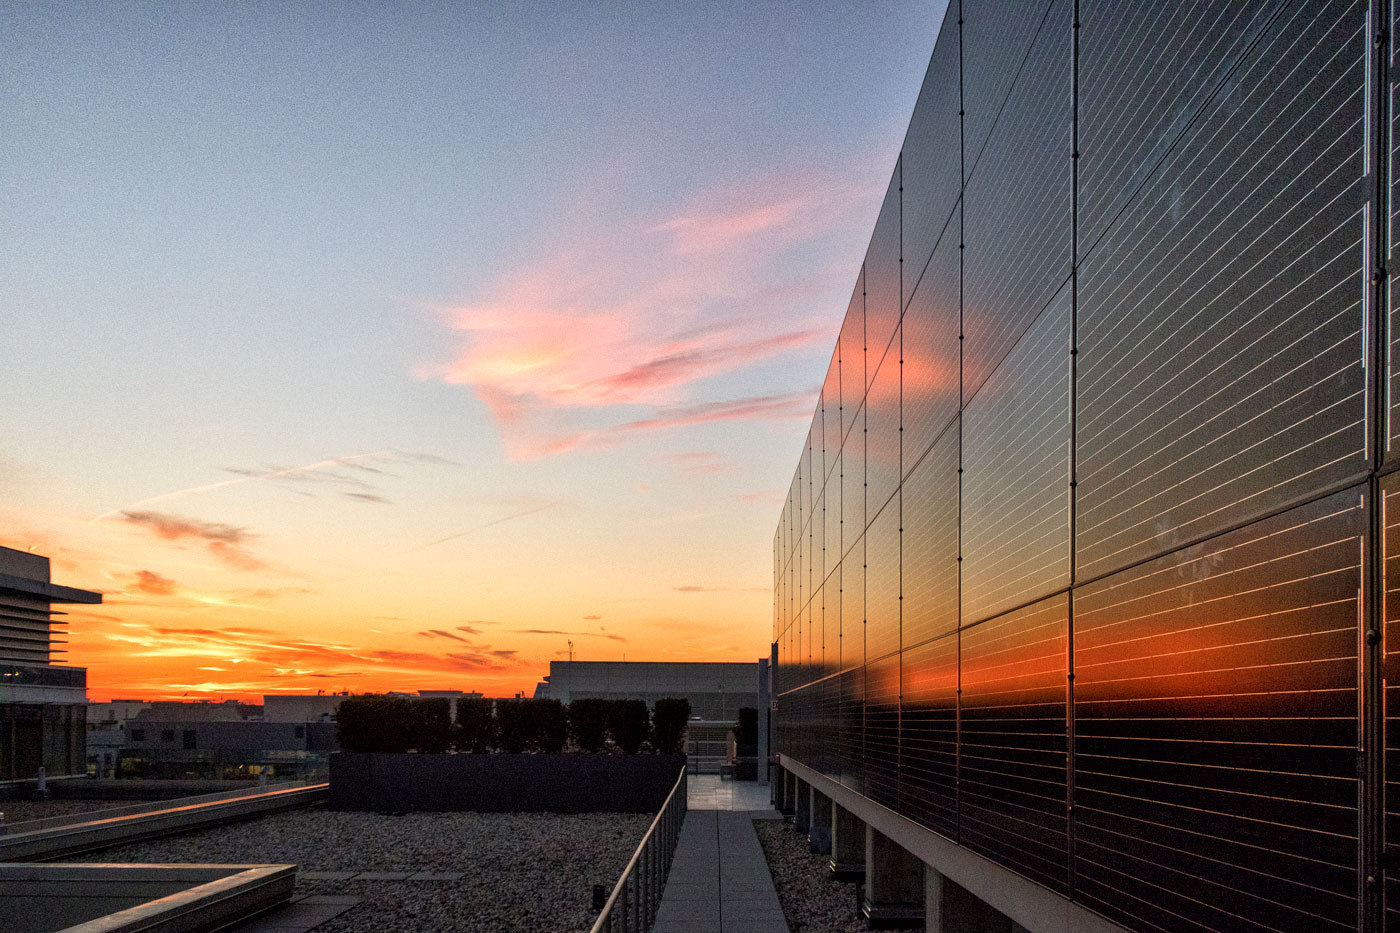 An outdoor sunset view of an upright vertical wall of solar panels on the right. There are streaks of clouds in the sky and the view overlooks buildings to the left.